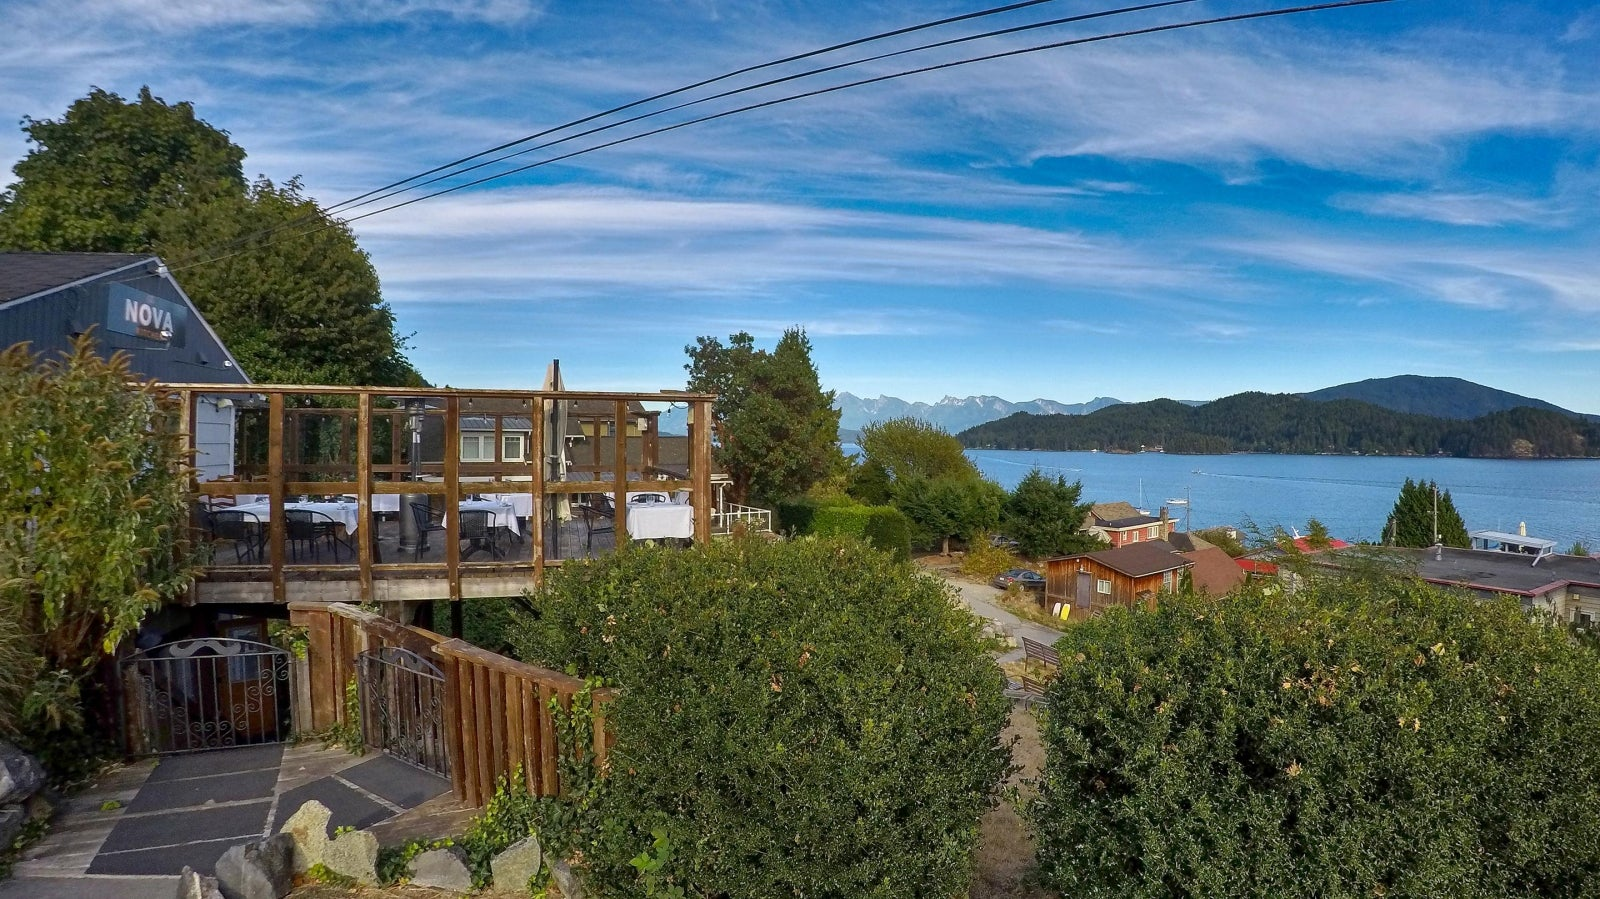 The Nova Kitchen 546 Gibsons Way, Gibsons BC V0N1V9 - Gibsons & Area COMM for sale(C8014726) #22